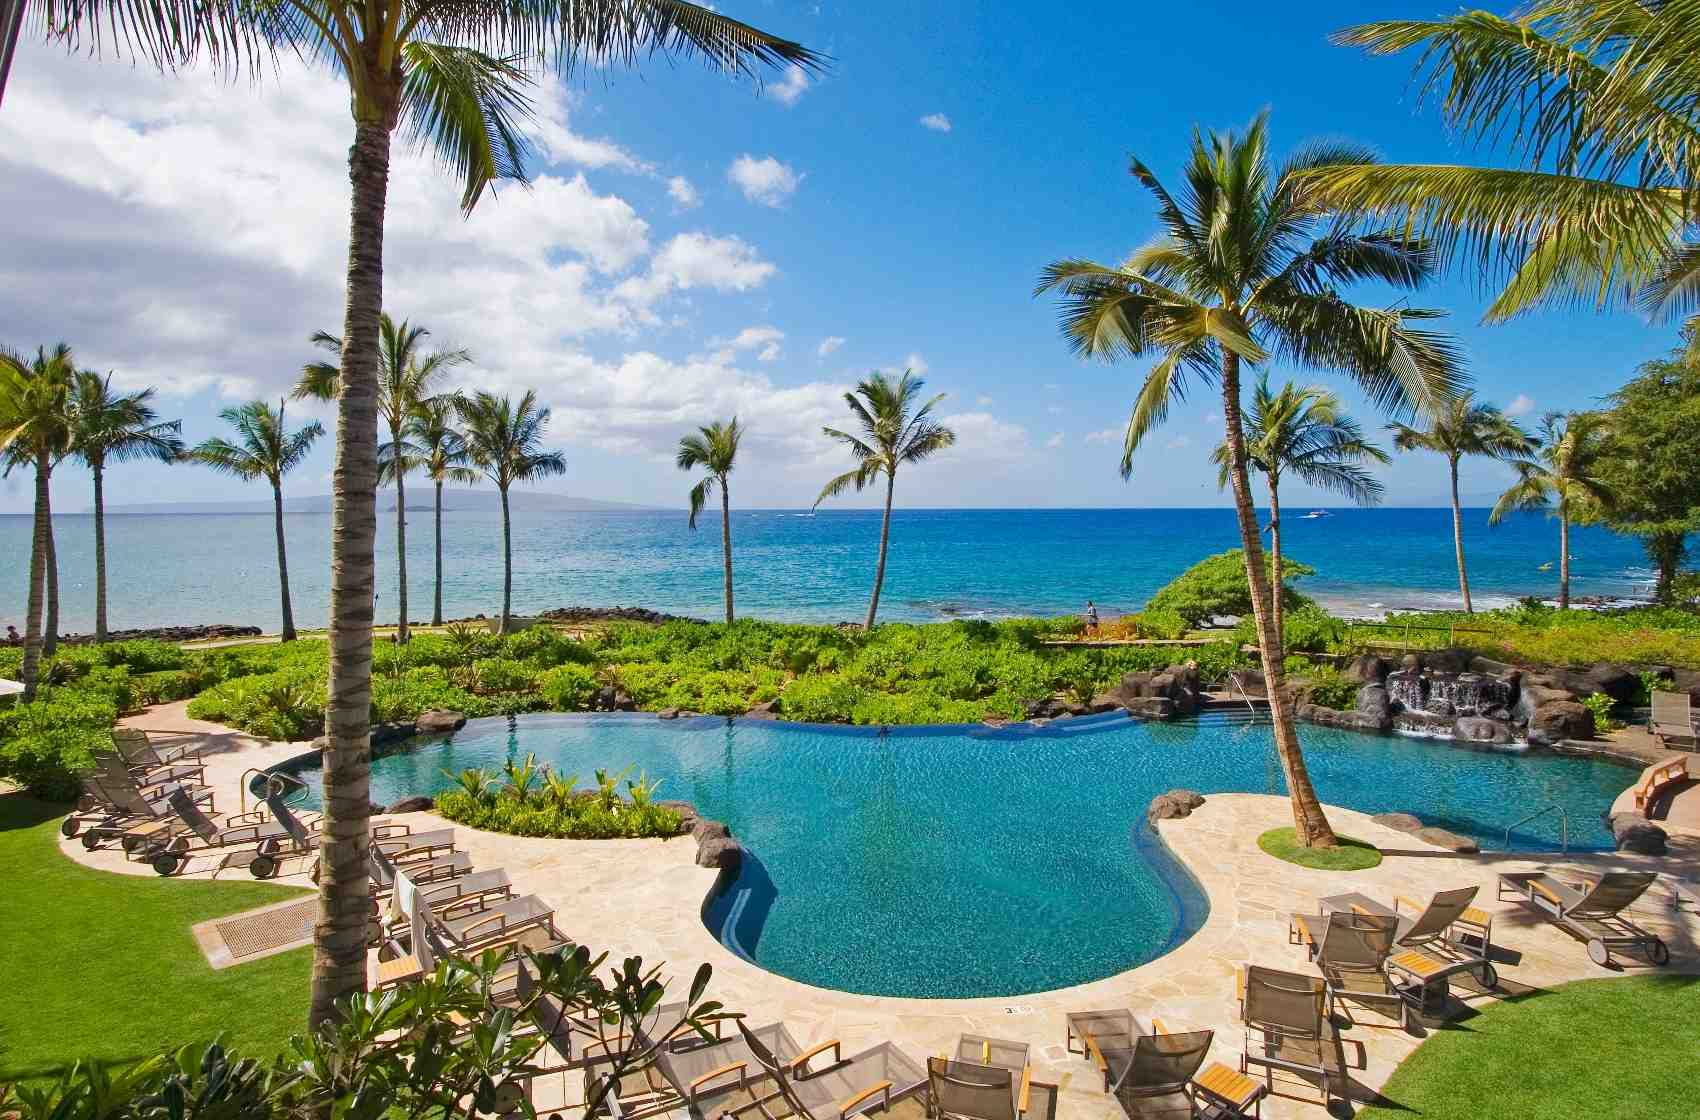 Maui vacations start here wailea beach villas travel for The best beach vacations